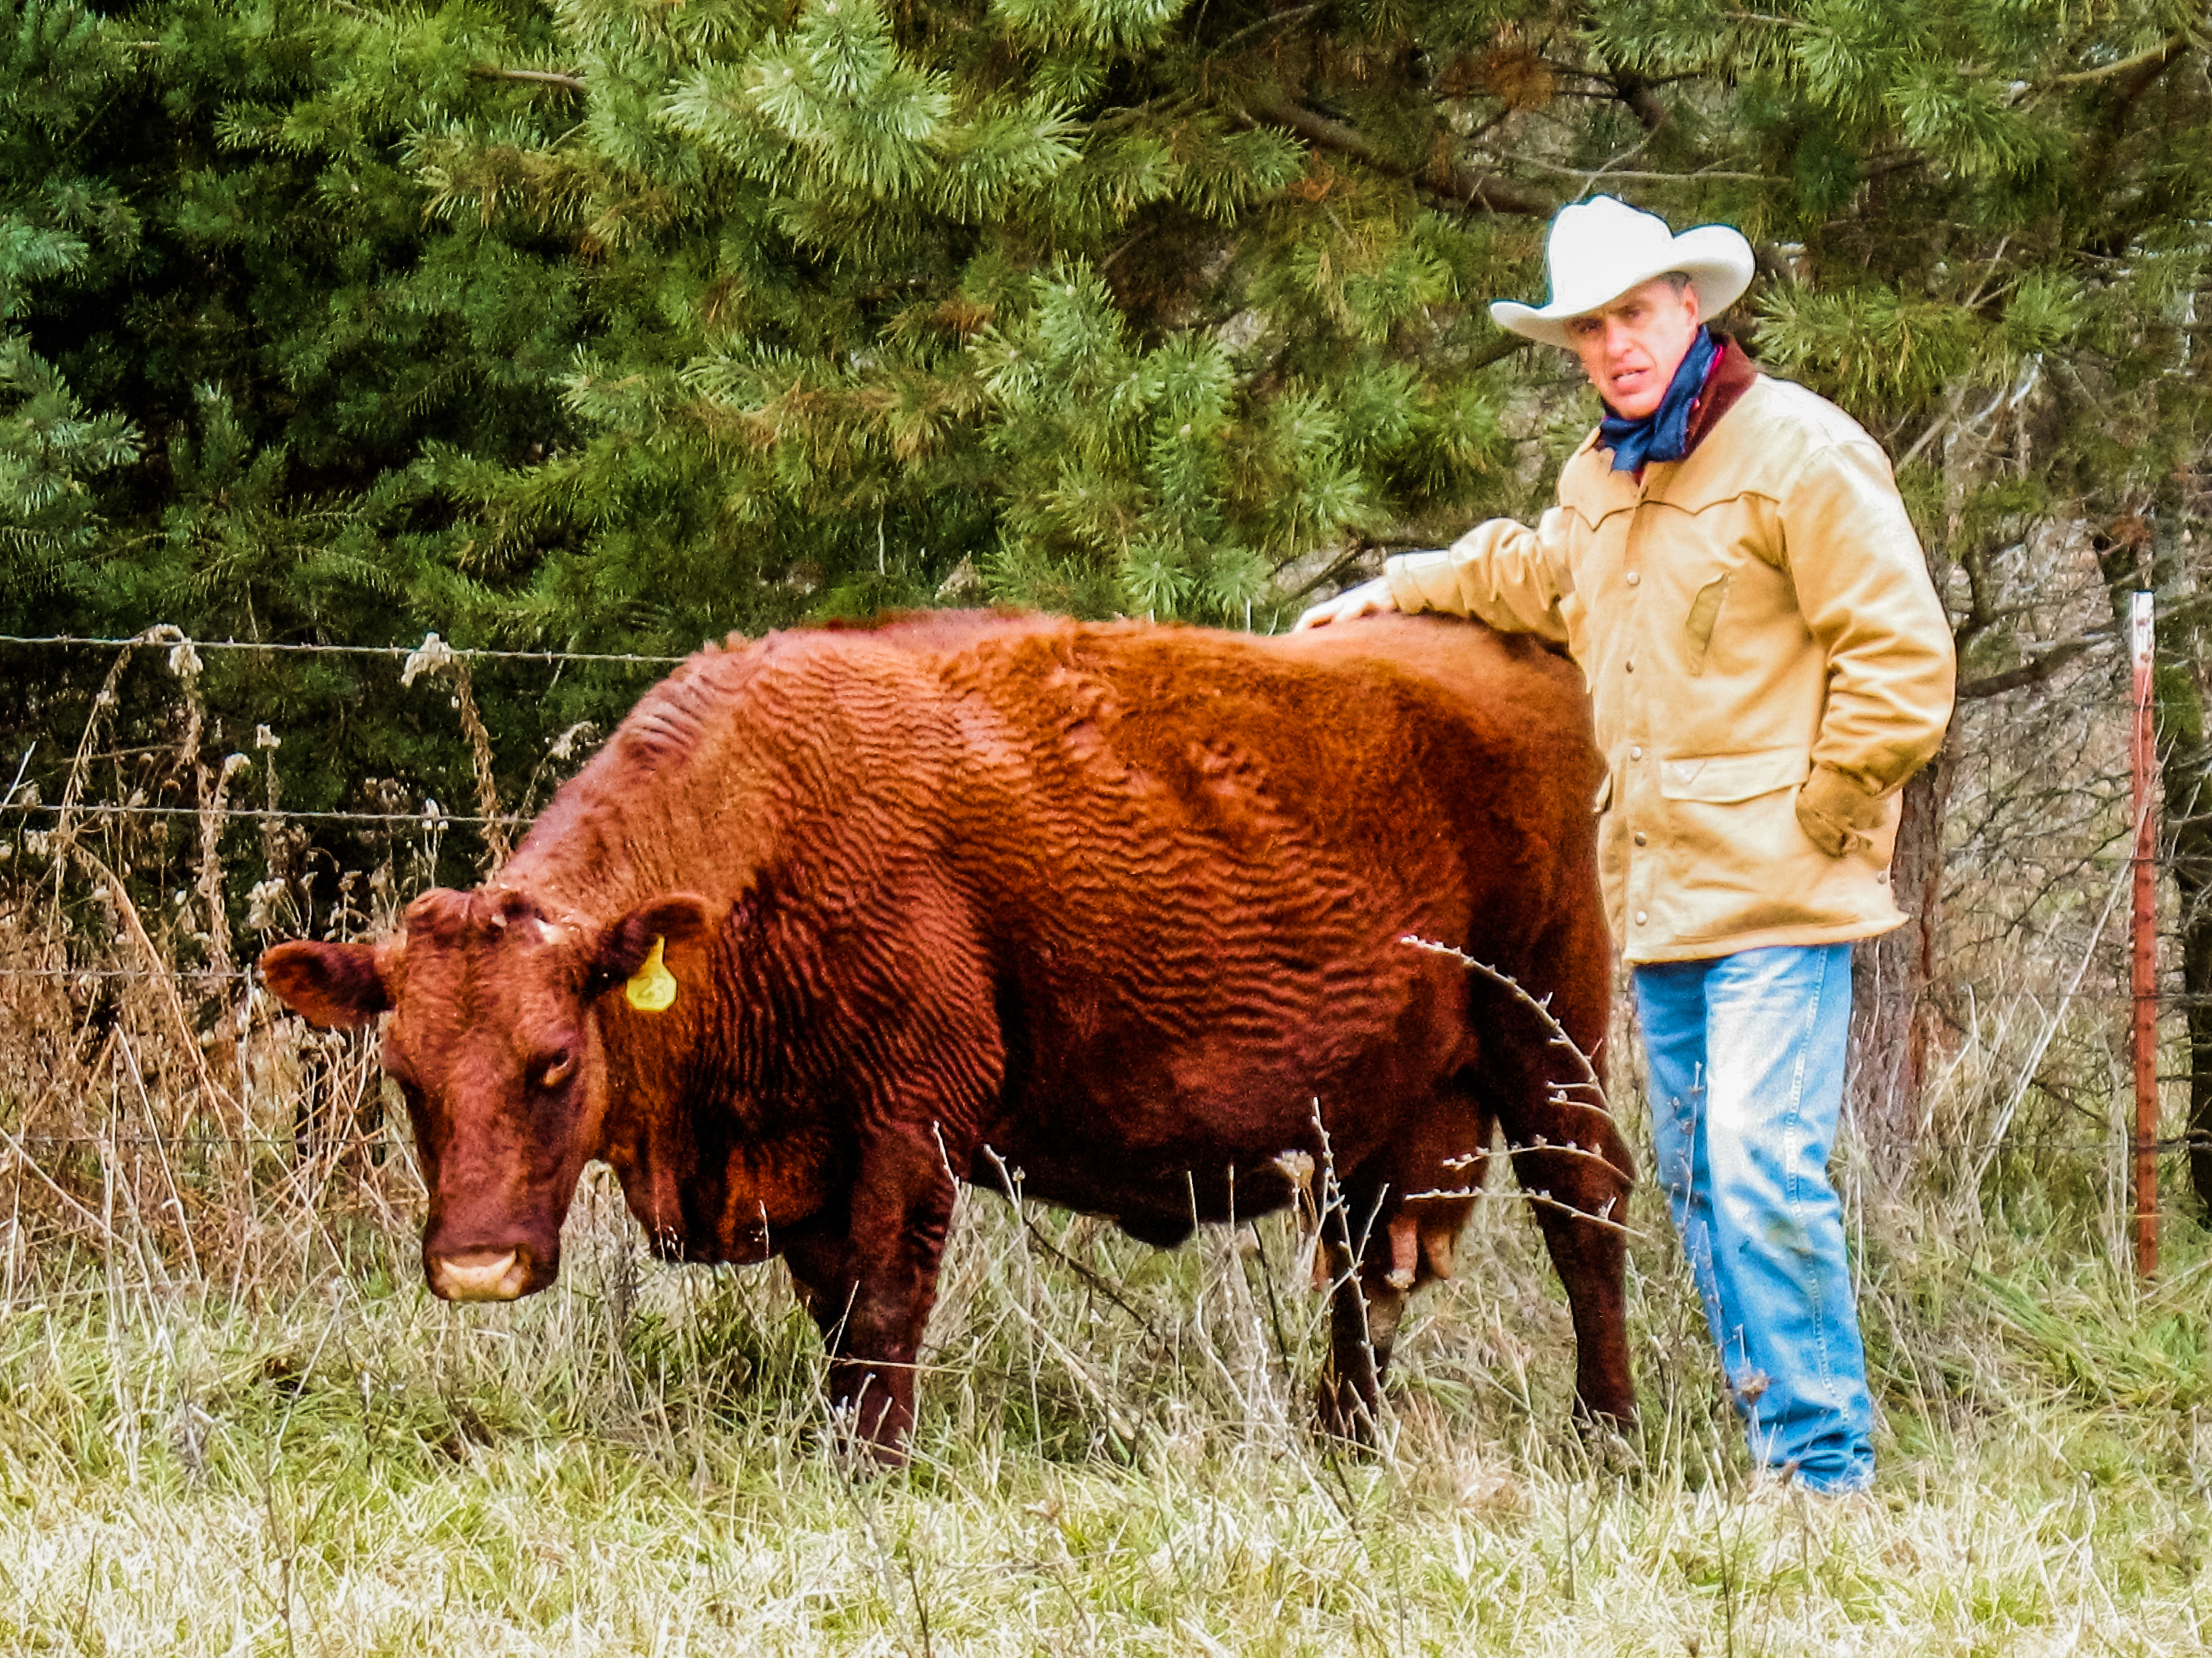 12 Stones Grassland Beef takes pride in helping American farmer's and rancher's make the best beef possible.